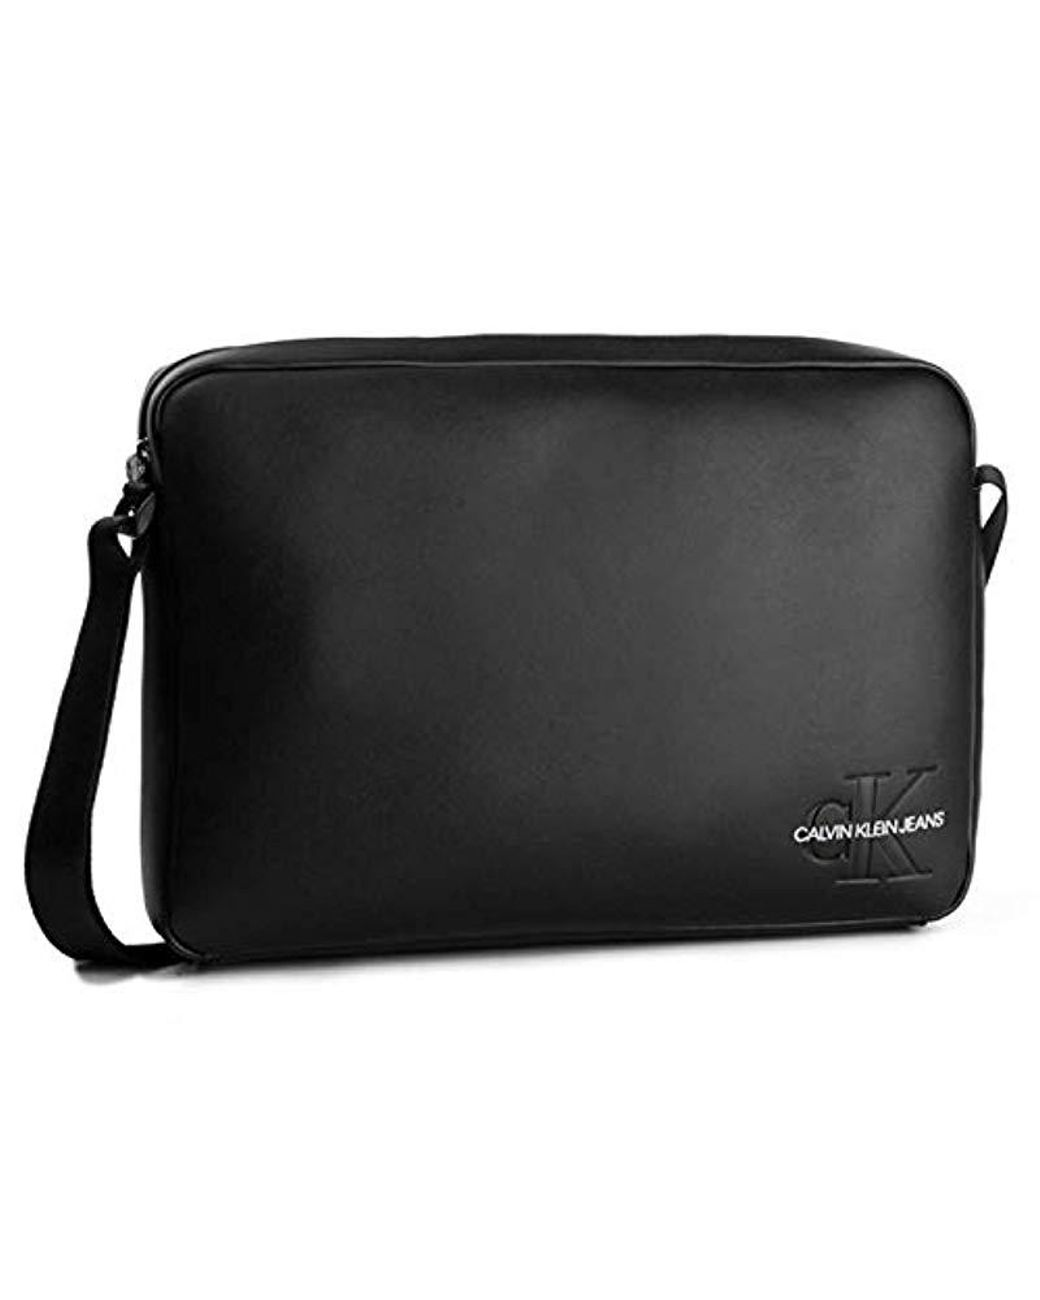 selezione migliore d4c11 ec1cf Calvin Klein K50k504726 Smooth Shoulder in Black for Men - Lyst